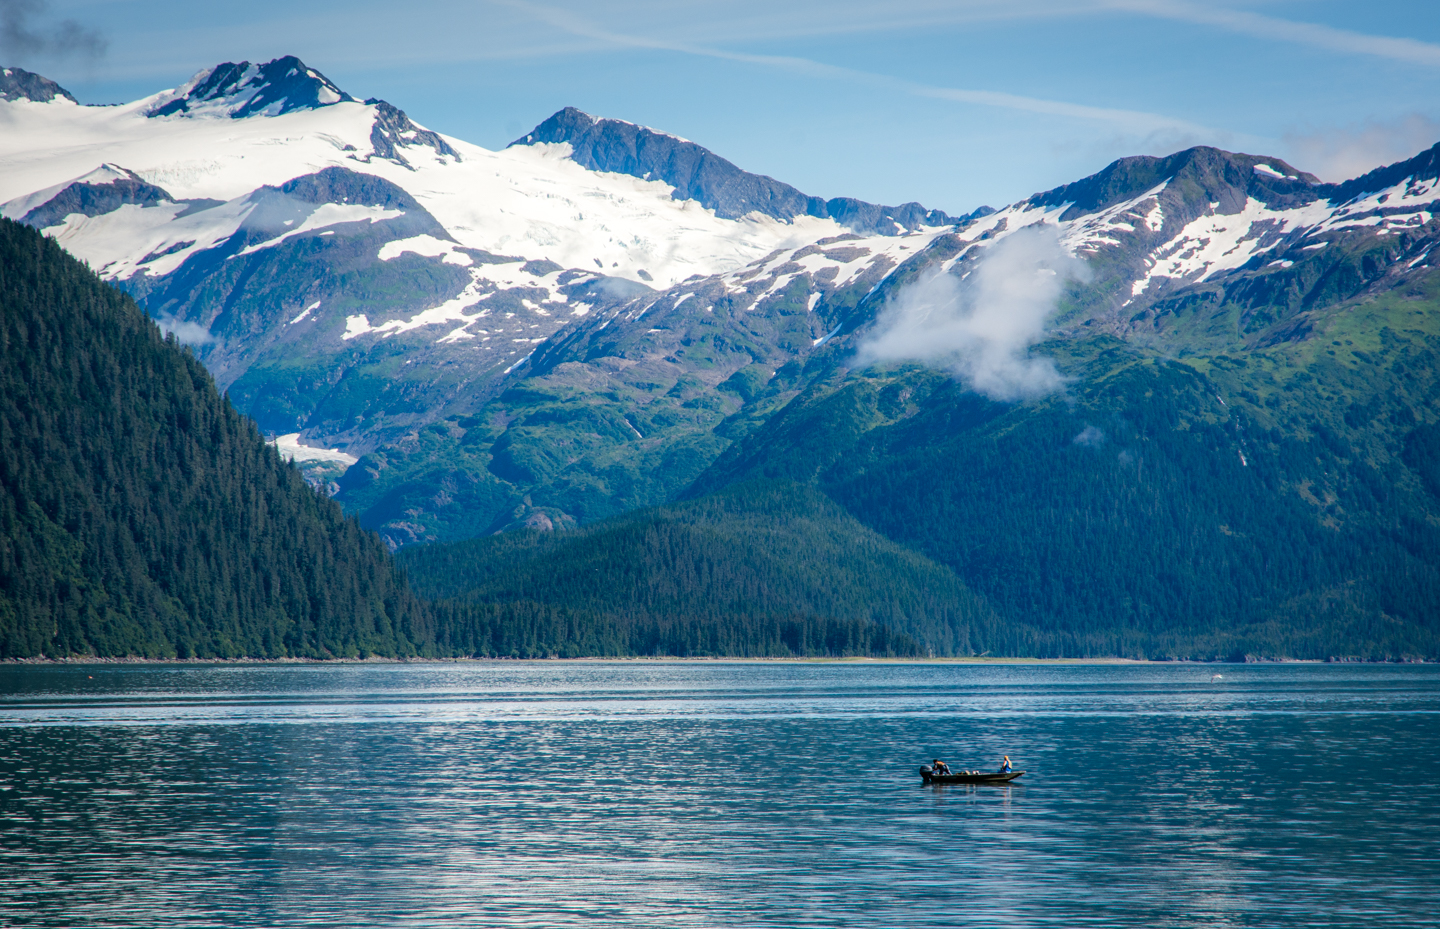 Whittier alaska a strange and beautiful place day 46 for Alaska out of state fishing license